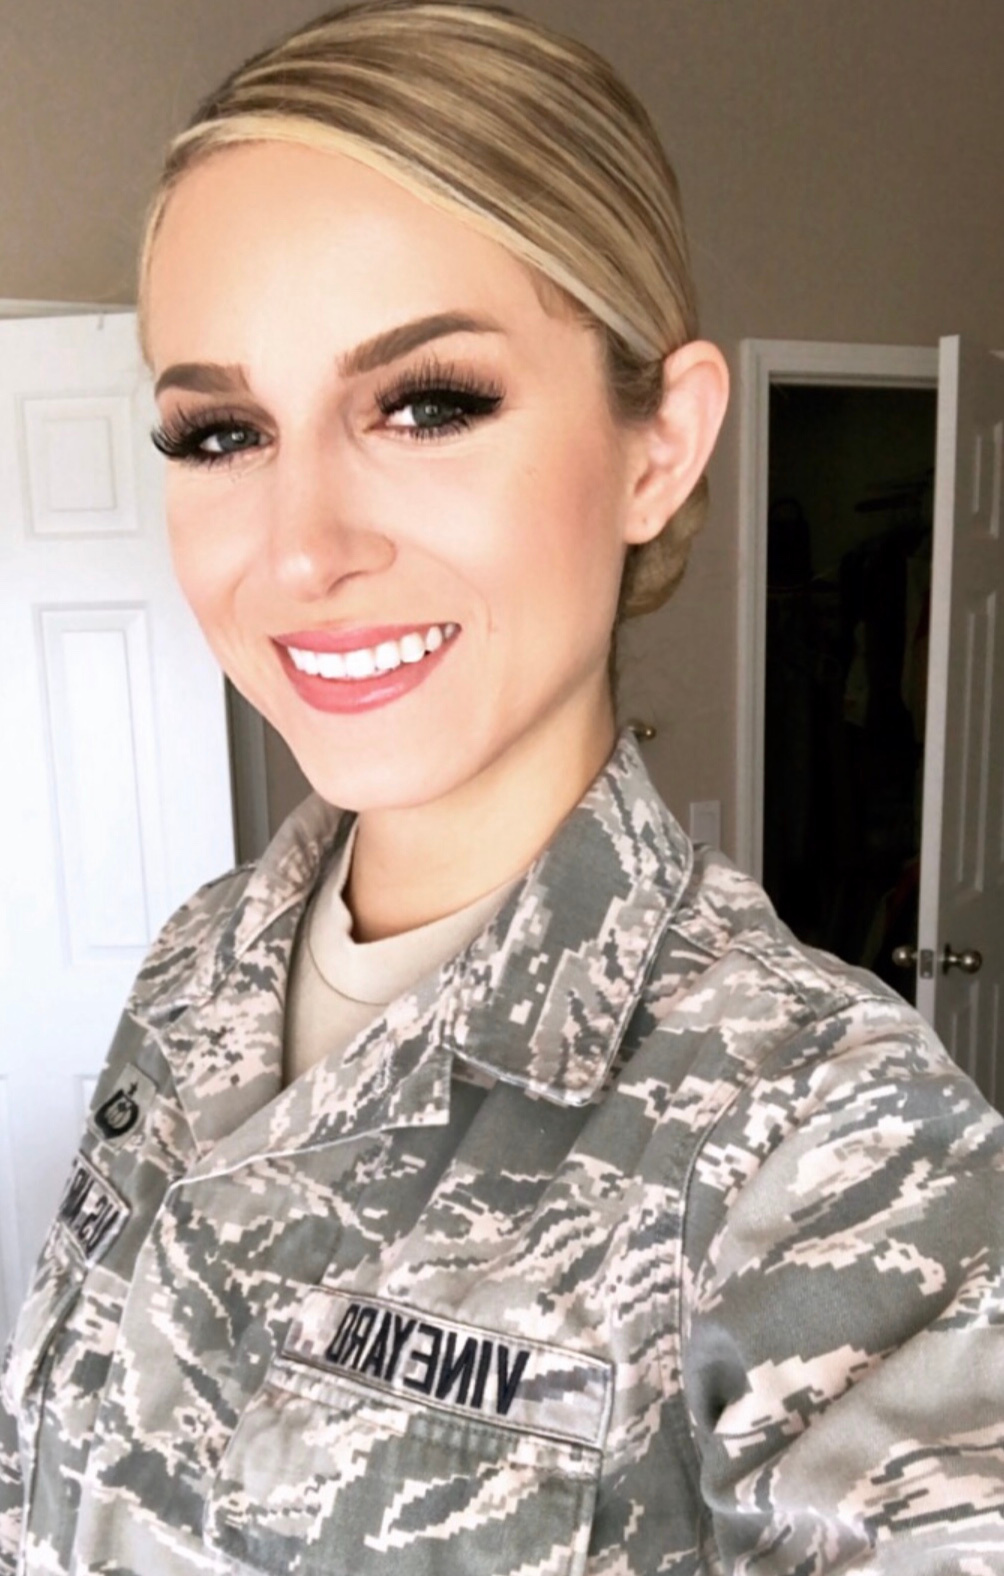 Julia Vineyard, U.S. Air Force